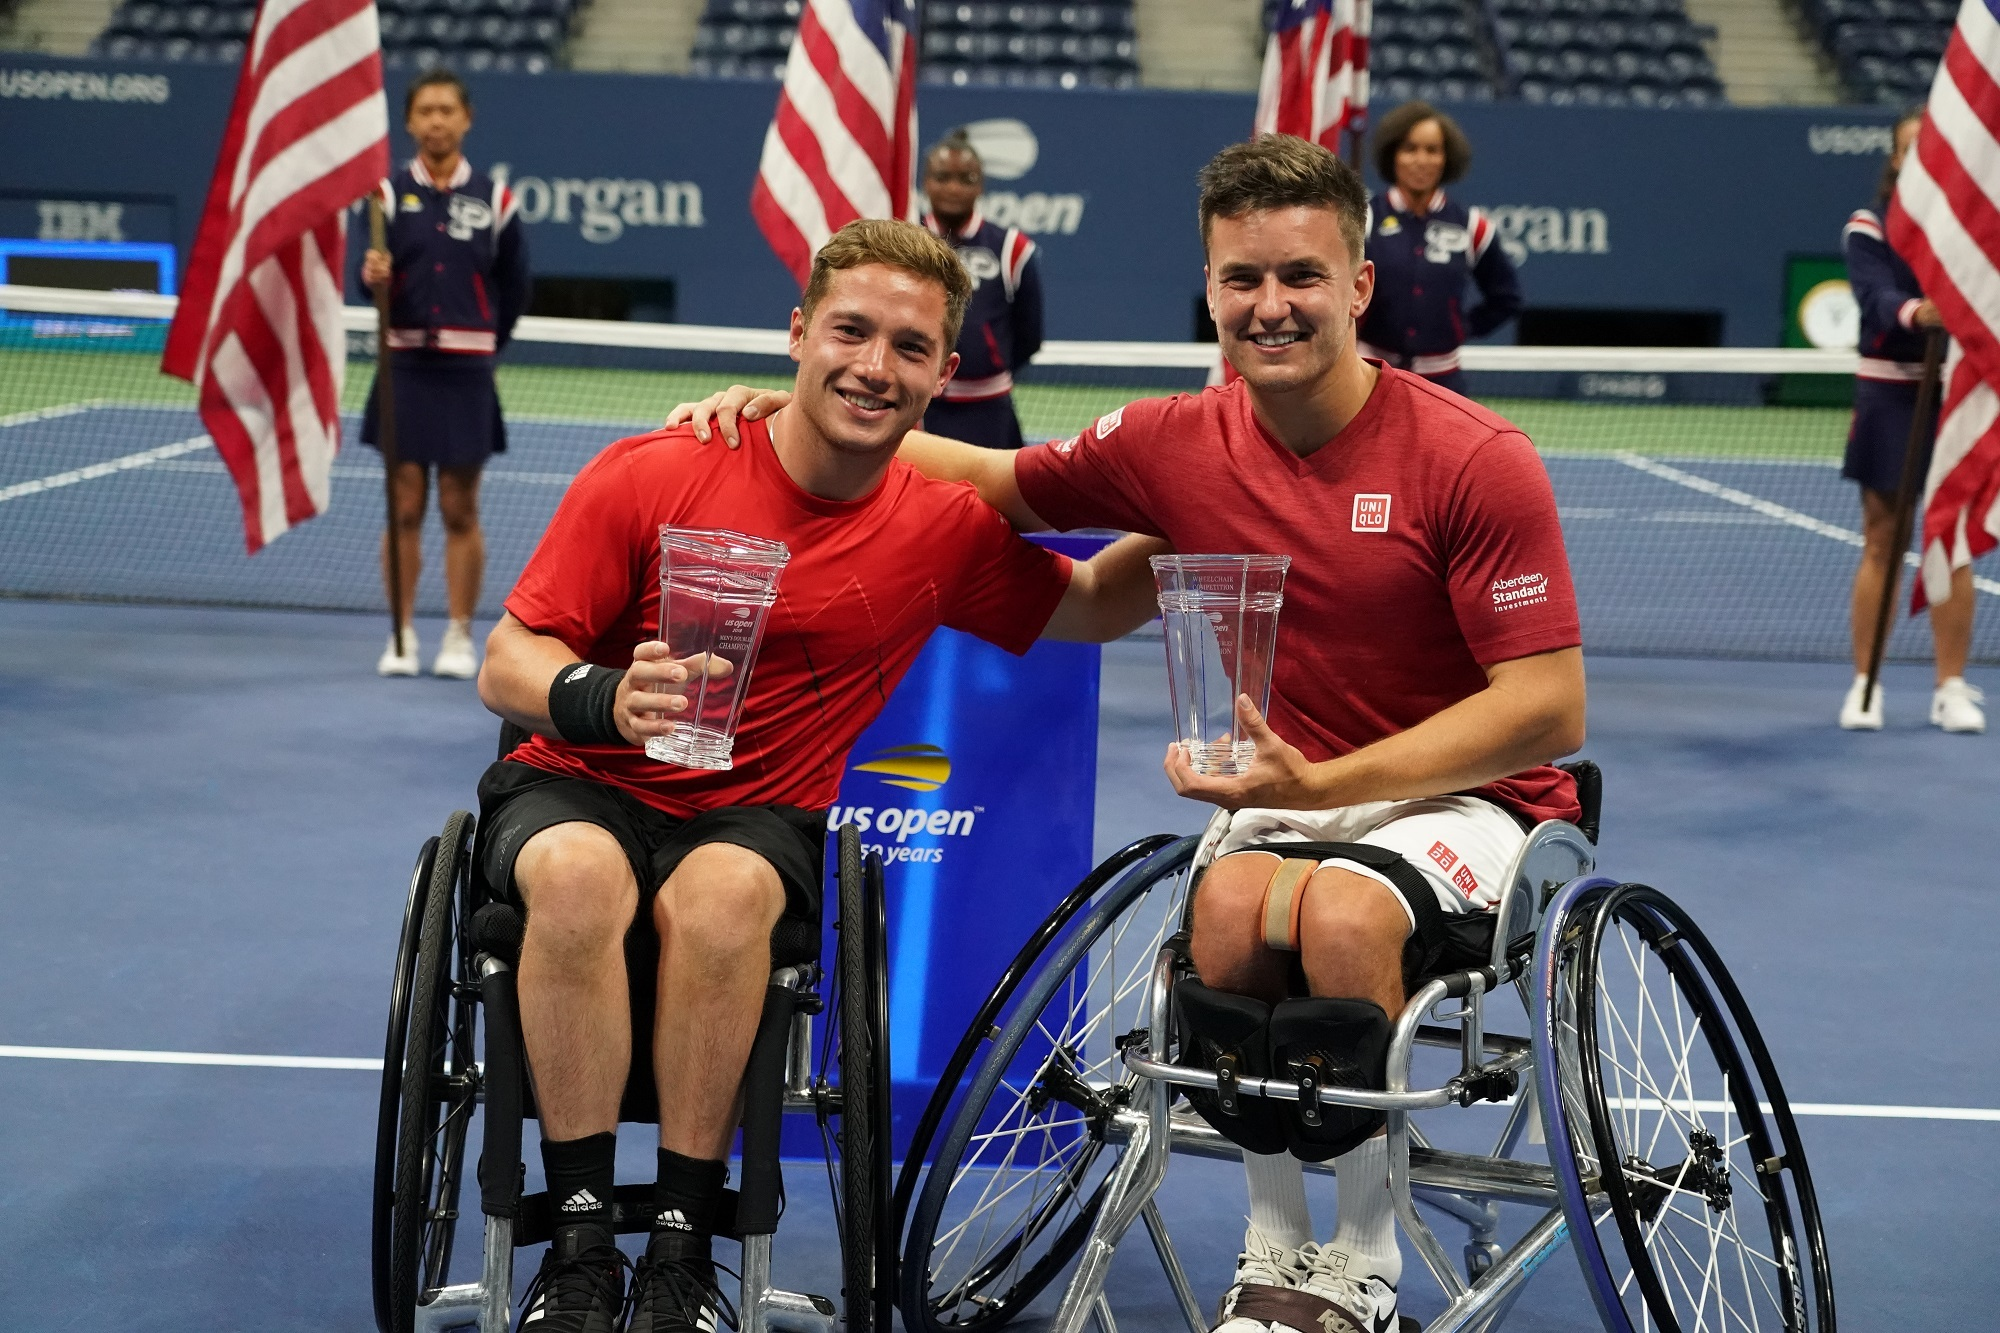 Alfie Hewett and Gordon Reid, pictured after winning the US Open in September, lost in the Australian Open semi-finals (Pic - Tennis Foundation)